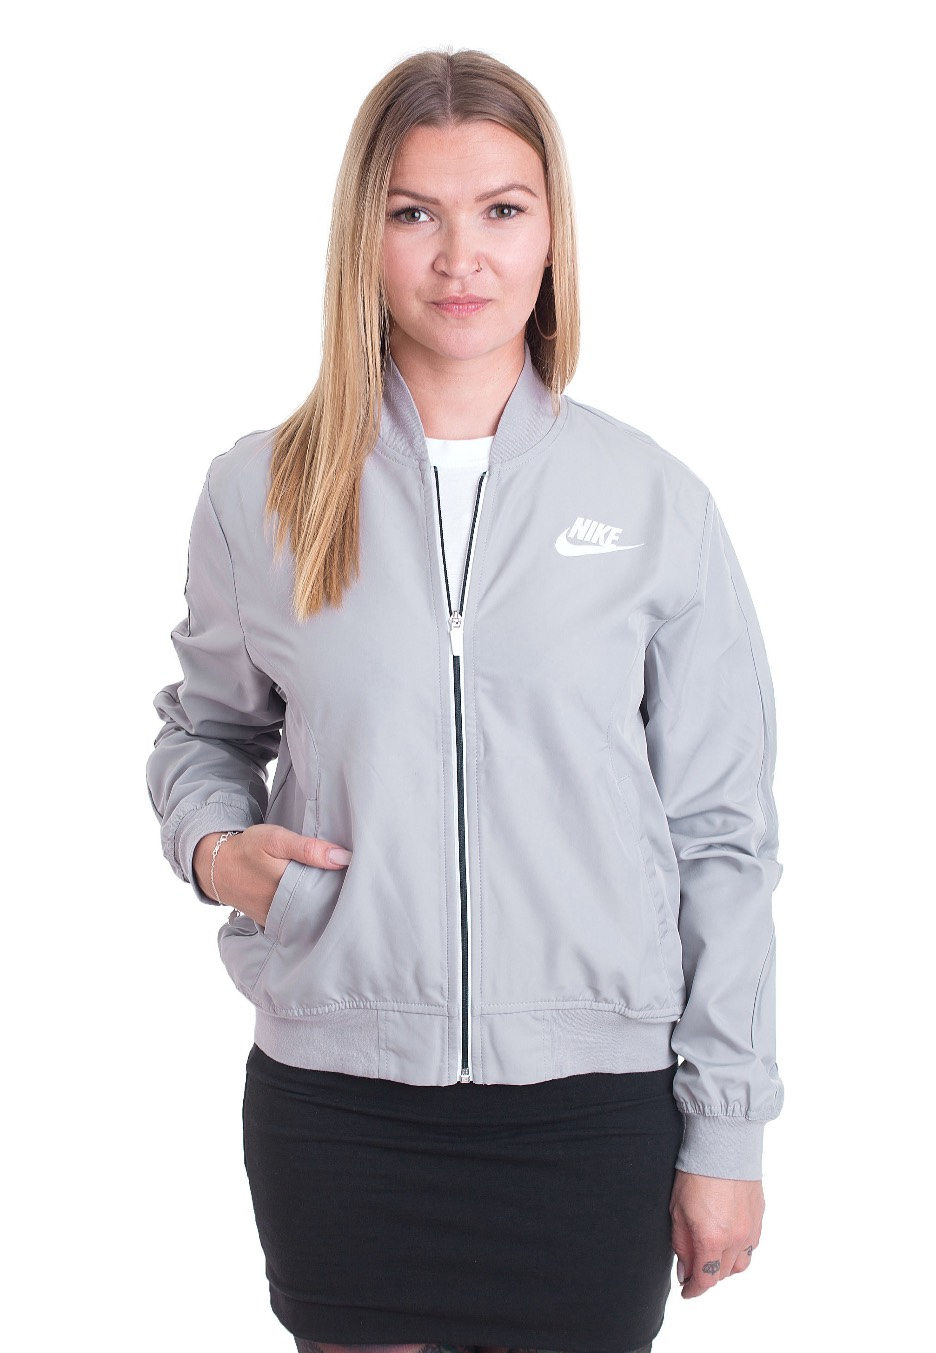 150185fec0 Nike - Advance 15 Atmosphere Grey White - Jacket - Streetwear Shop ...